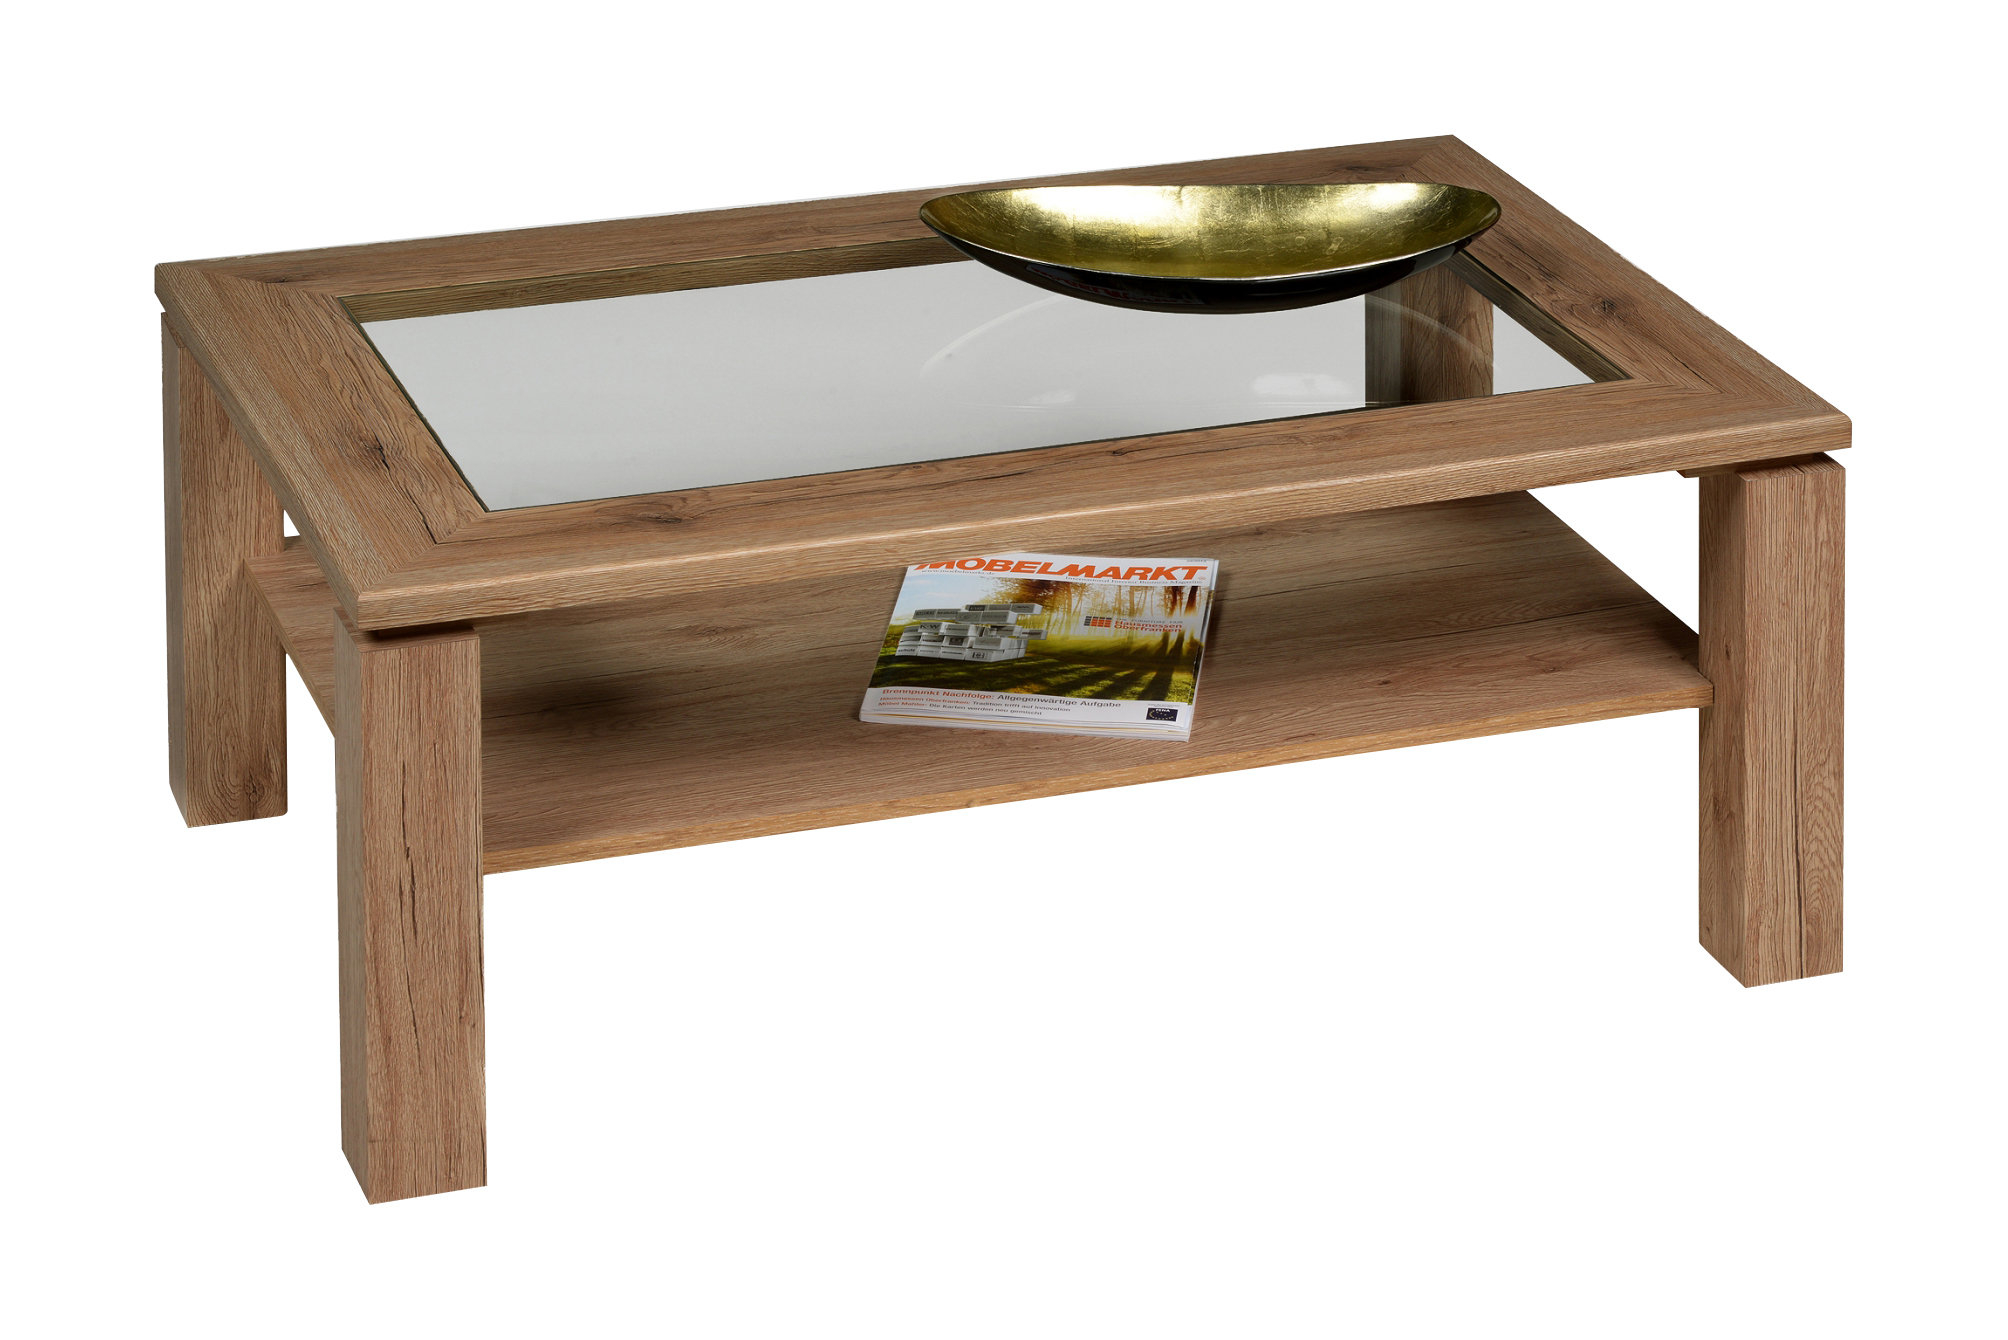 Alfa Tische Lugano Coffee Table With Storage Room Wayfaircouk with dimensions 2008 X 1340